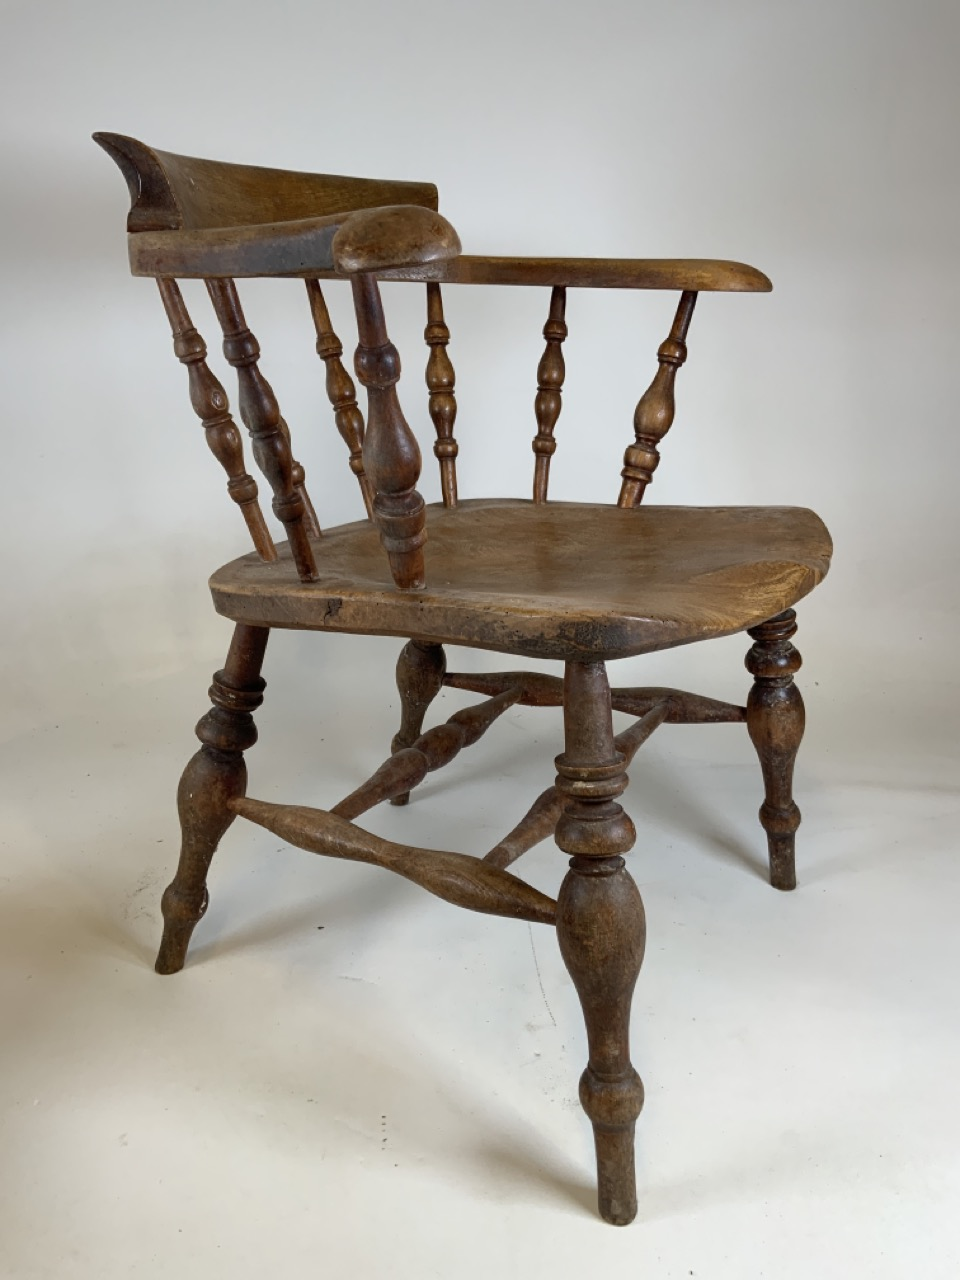 A Victorian smokers bow arm chair with curved top rail and turned spindles with saddle shaped seat - Image 7 of 10